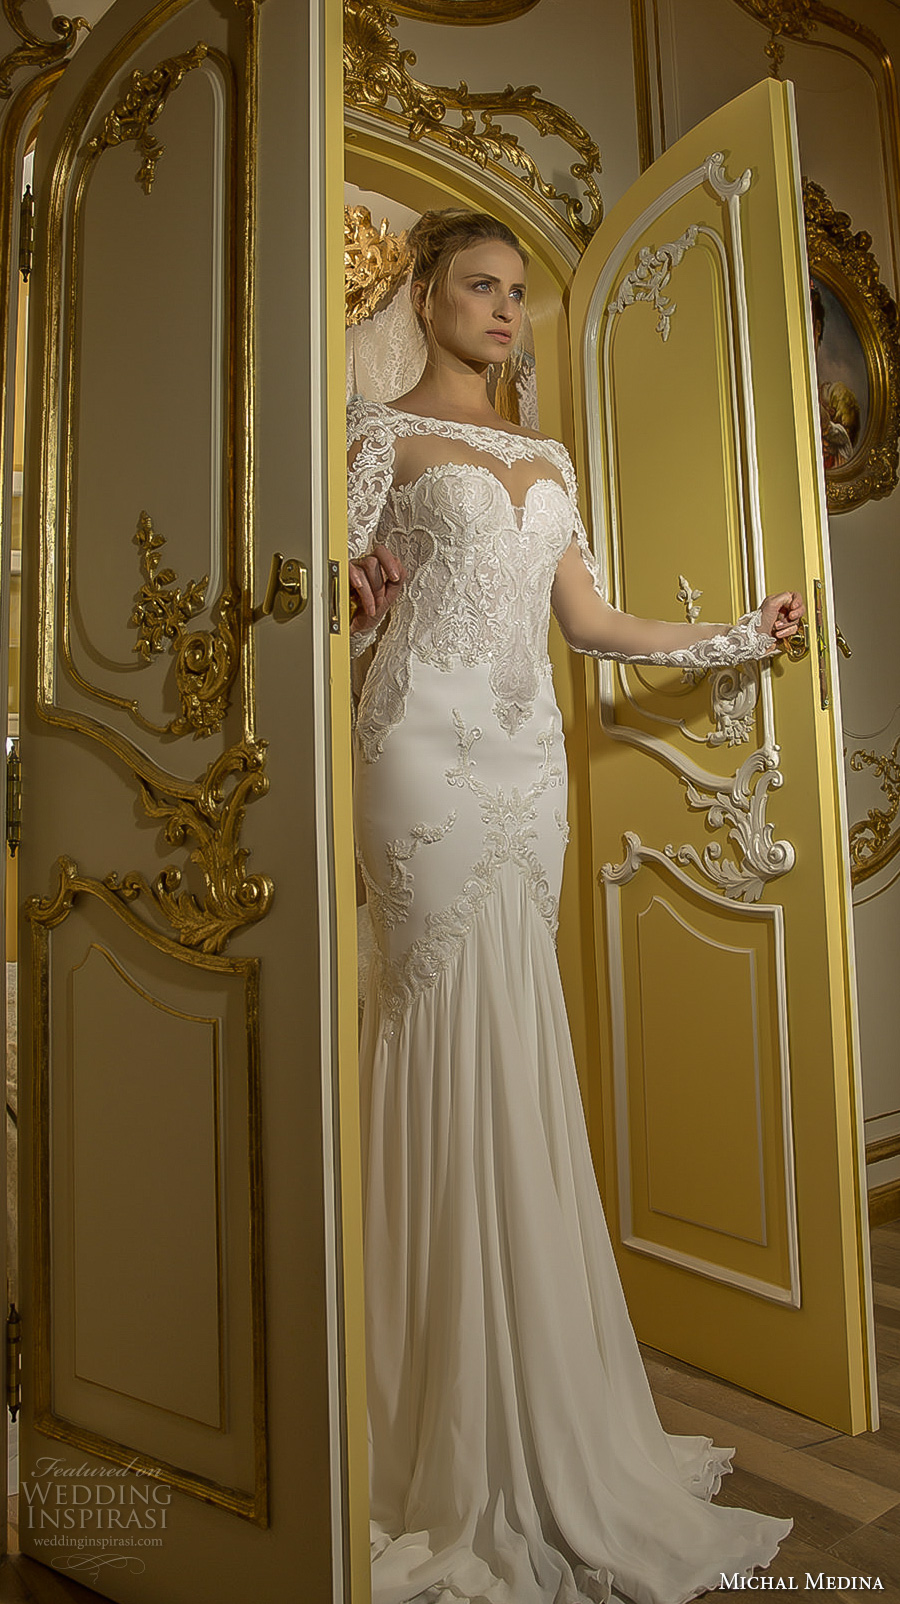 michal medina 2017 bridal long sleeves illusion beateau sweetheart neckline heavily embellished bodice elegant sheath fit flare wedding dress open low back chapel train (emma) mv